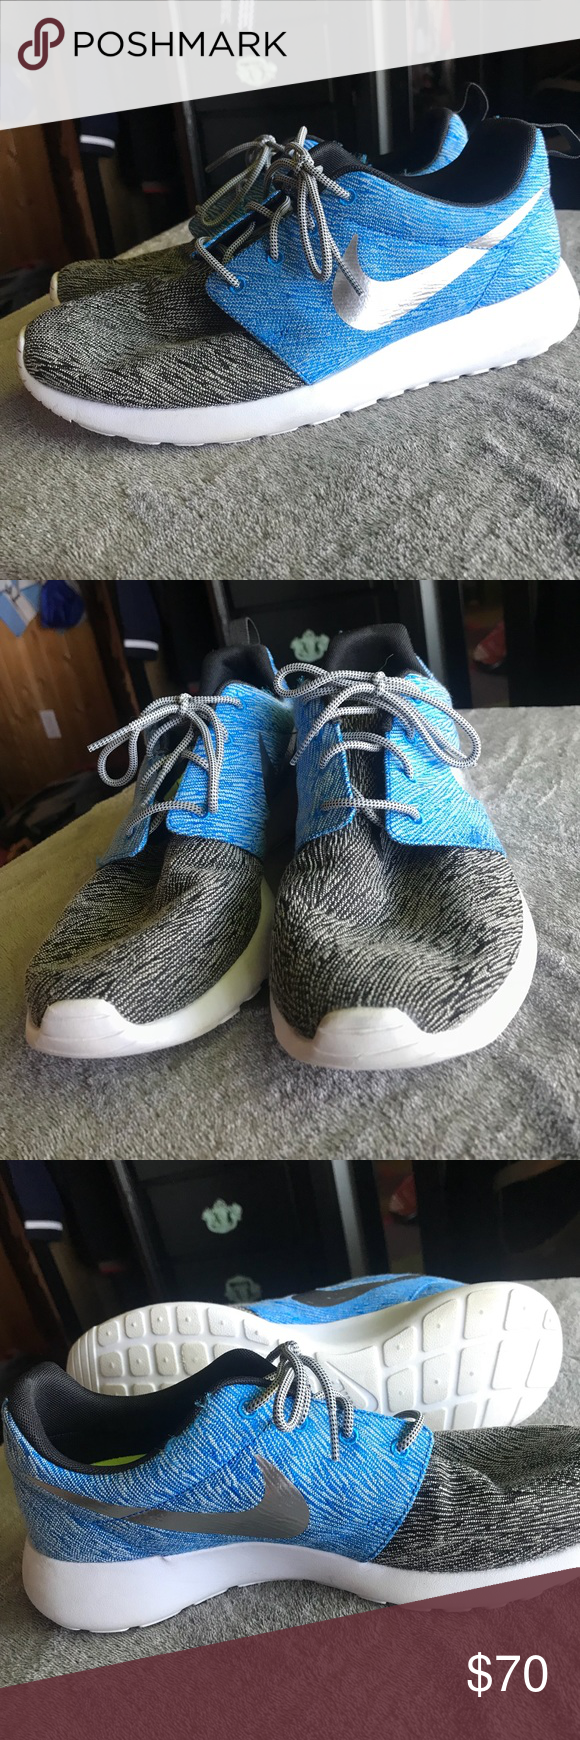 a1397060073a Custom Nikes Customized Nike performance shoe Can t return because it was  customized Worn once